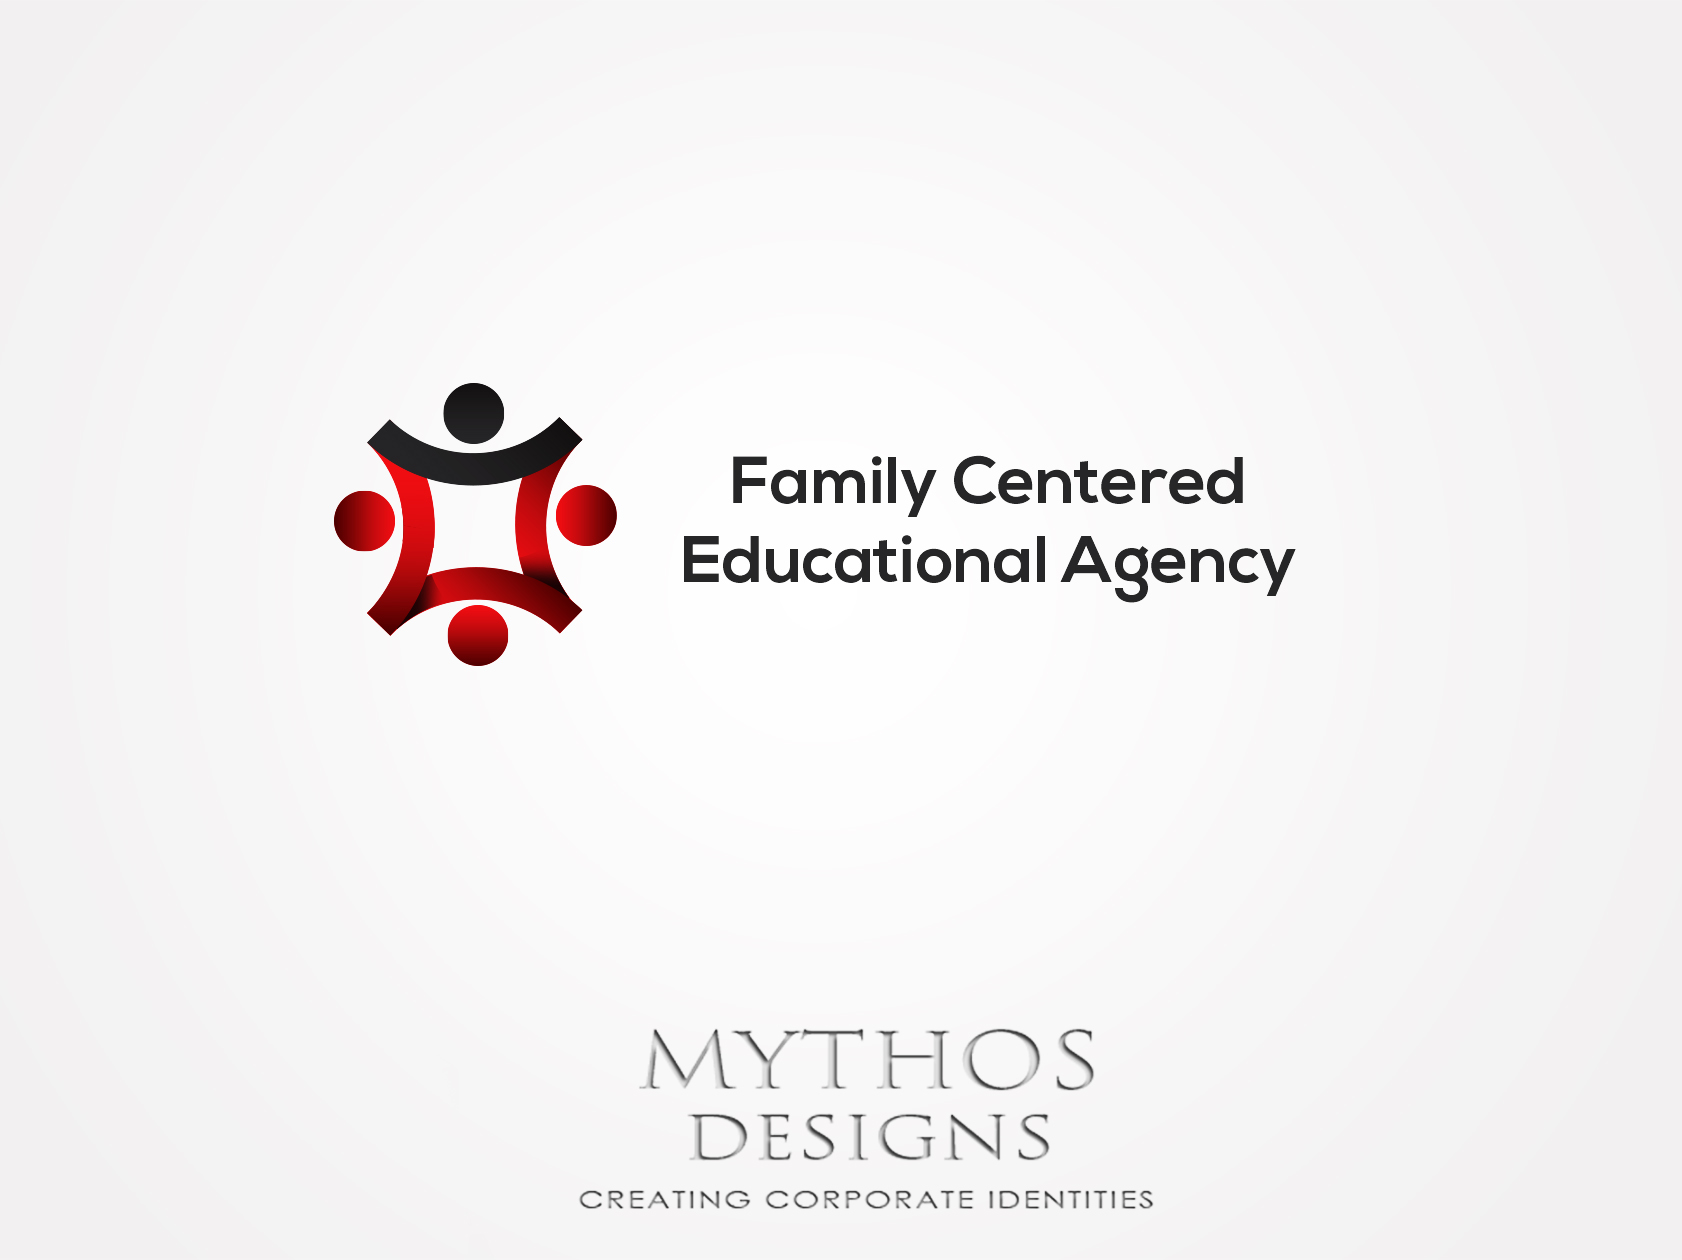 Logo Design by Mythos Designs - Entry No. 22 in the Logo Design Contest Captivating Logo Design for Family Centered Educational Agency.